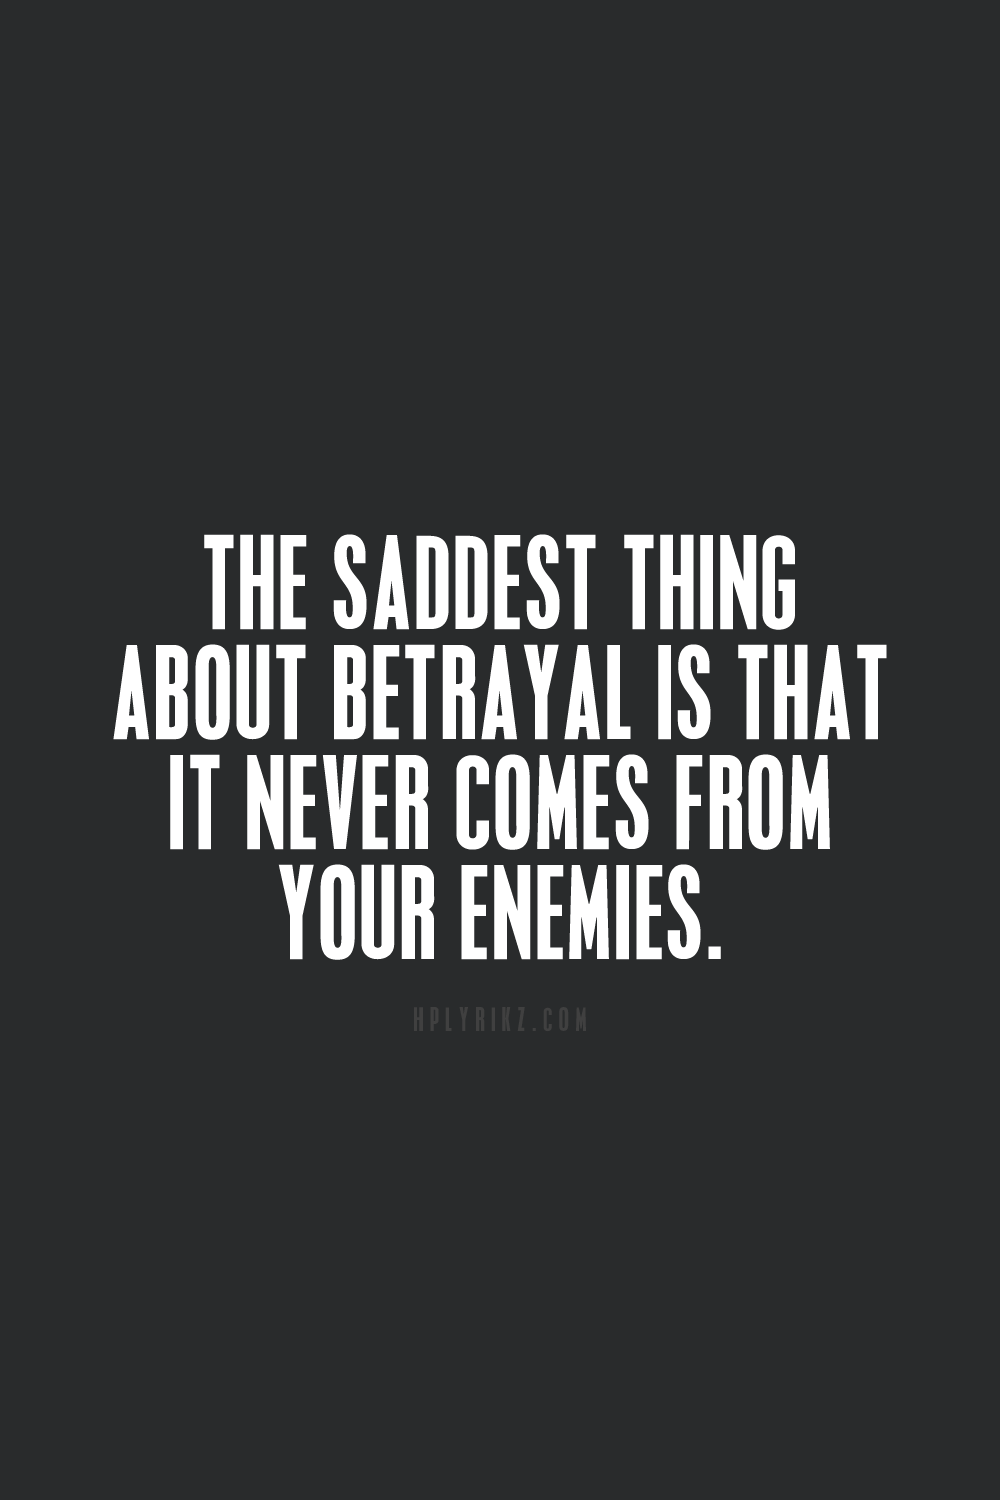 Quotes on betrayal and trust - Truth Quote Text Sad Quotes Motivation Hurt Friends True Inspiration Indie Grunge Leave Real Feelings Message Flirt Never Fake Come Crush Emotions Motto Bye